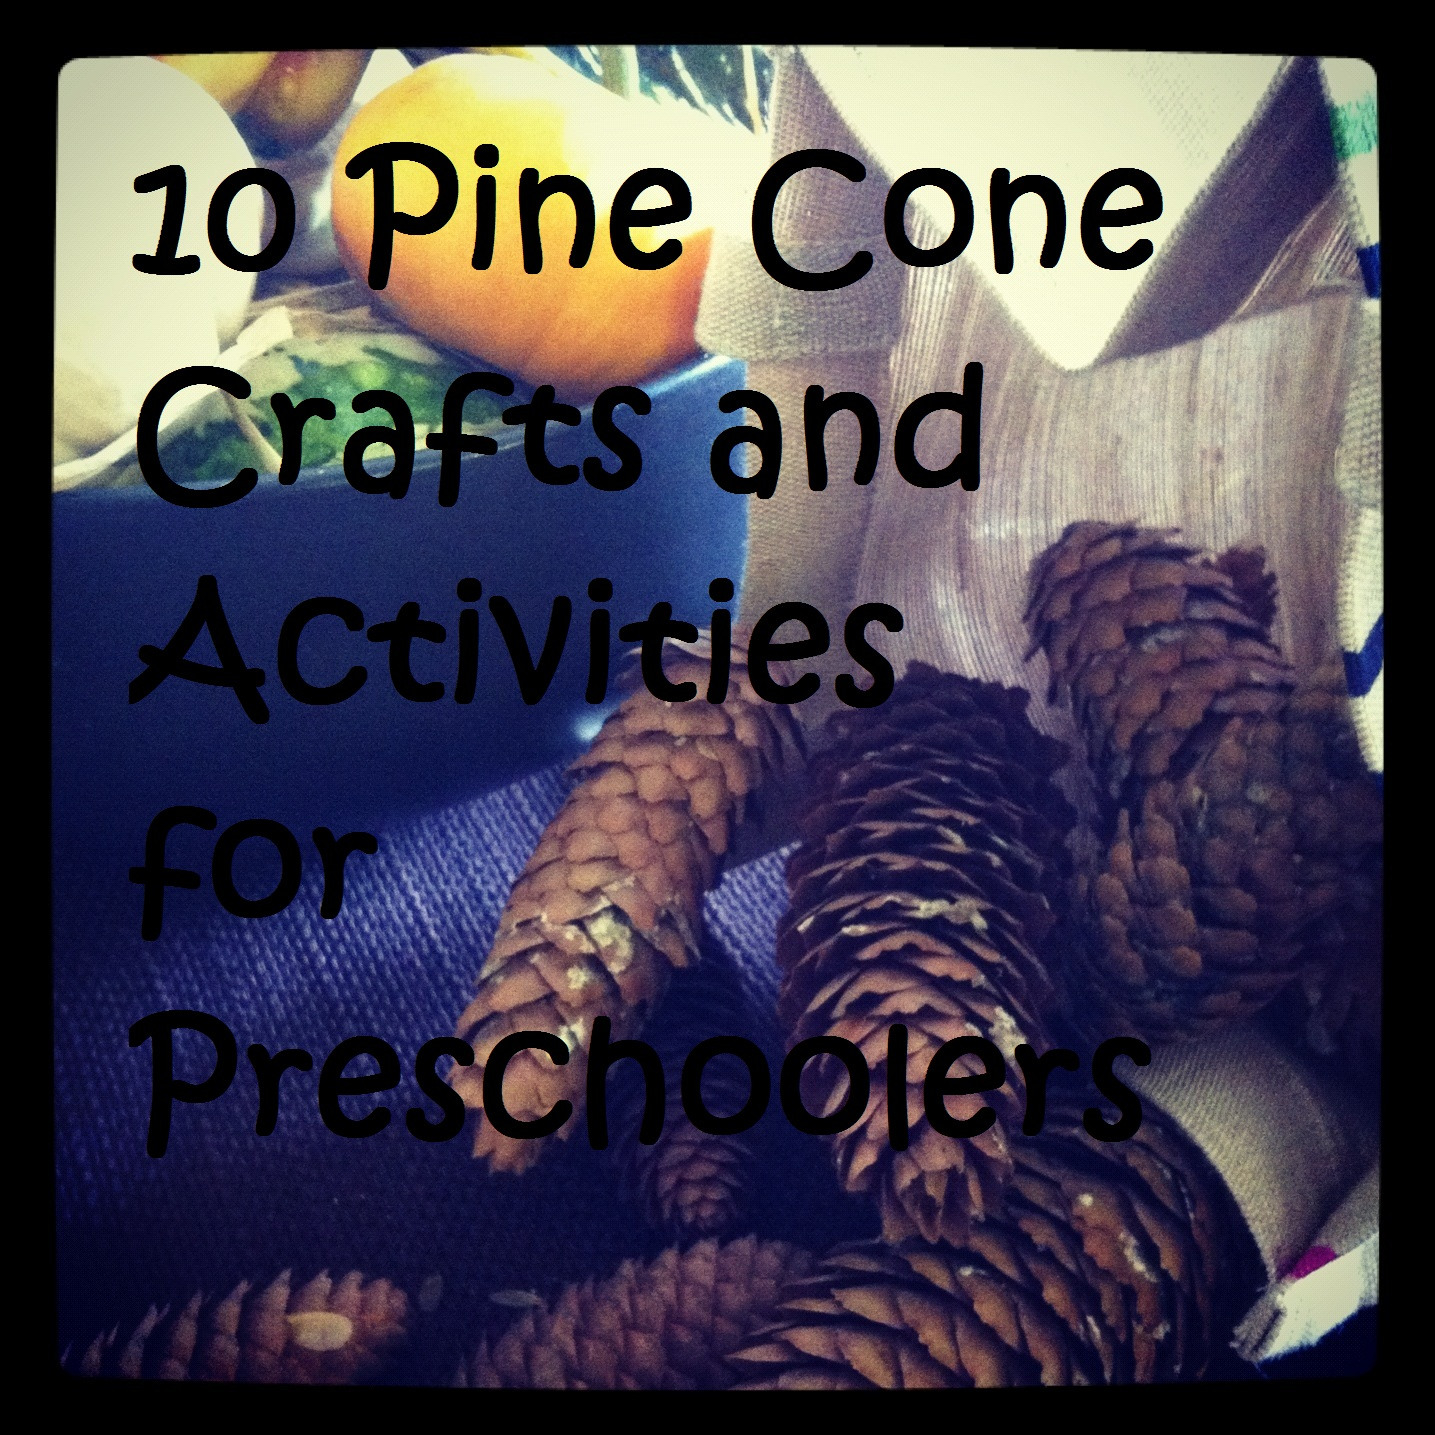 Handmade by cj pine cone crafts and activities for for Pine cone art projects